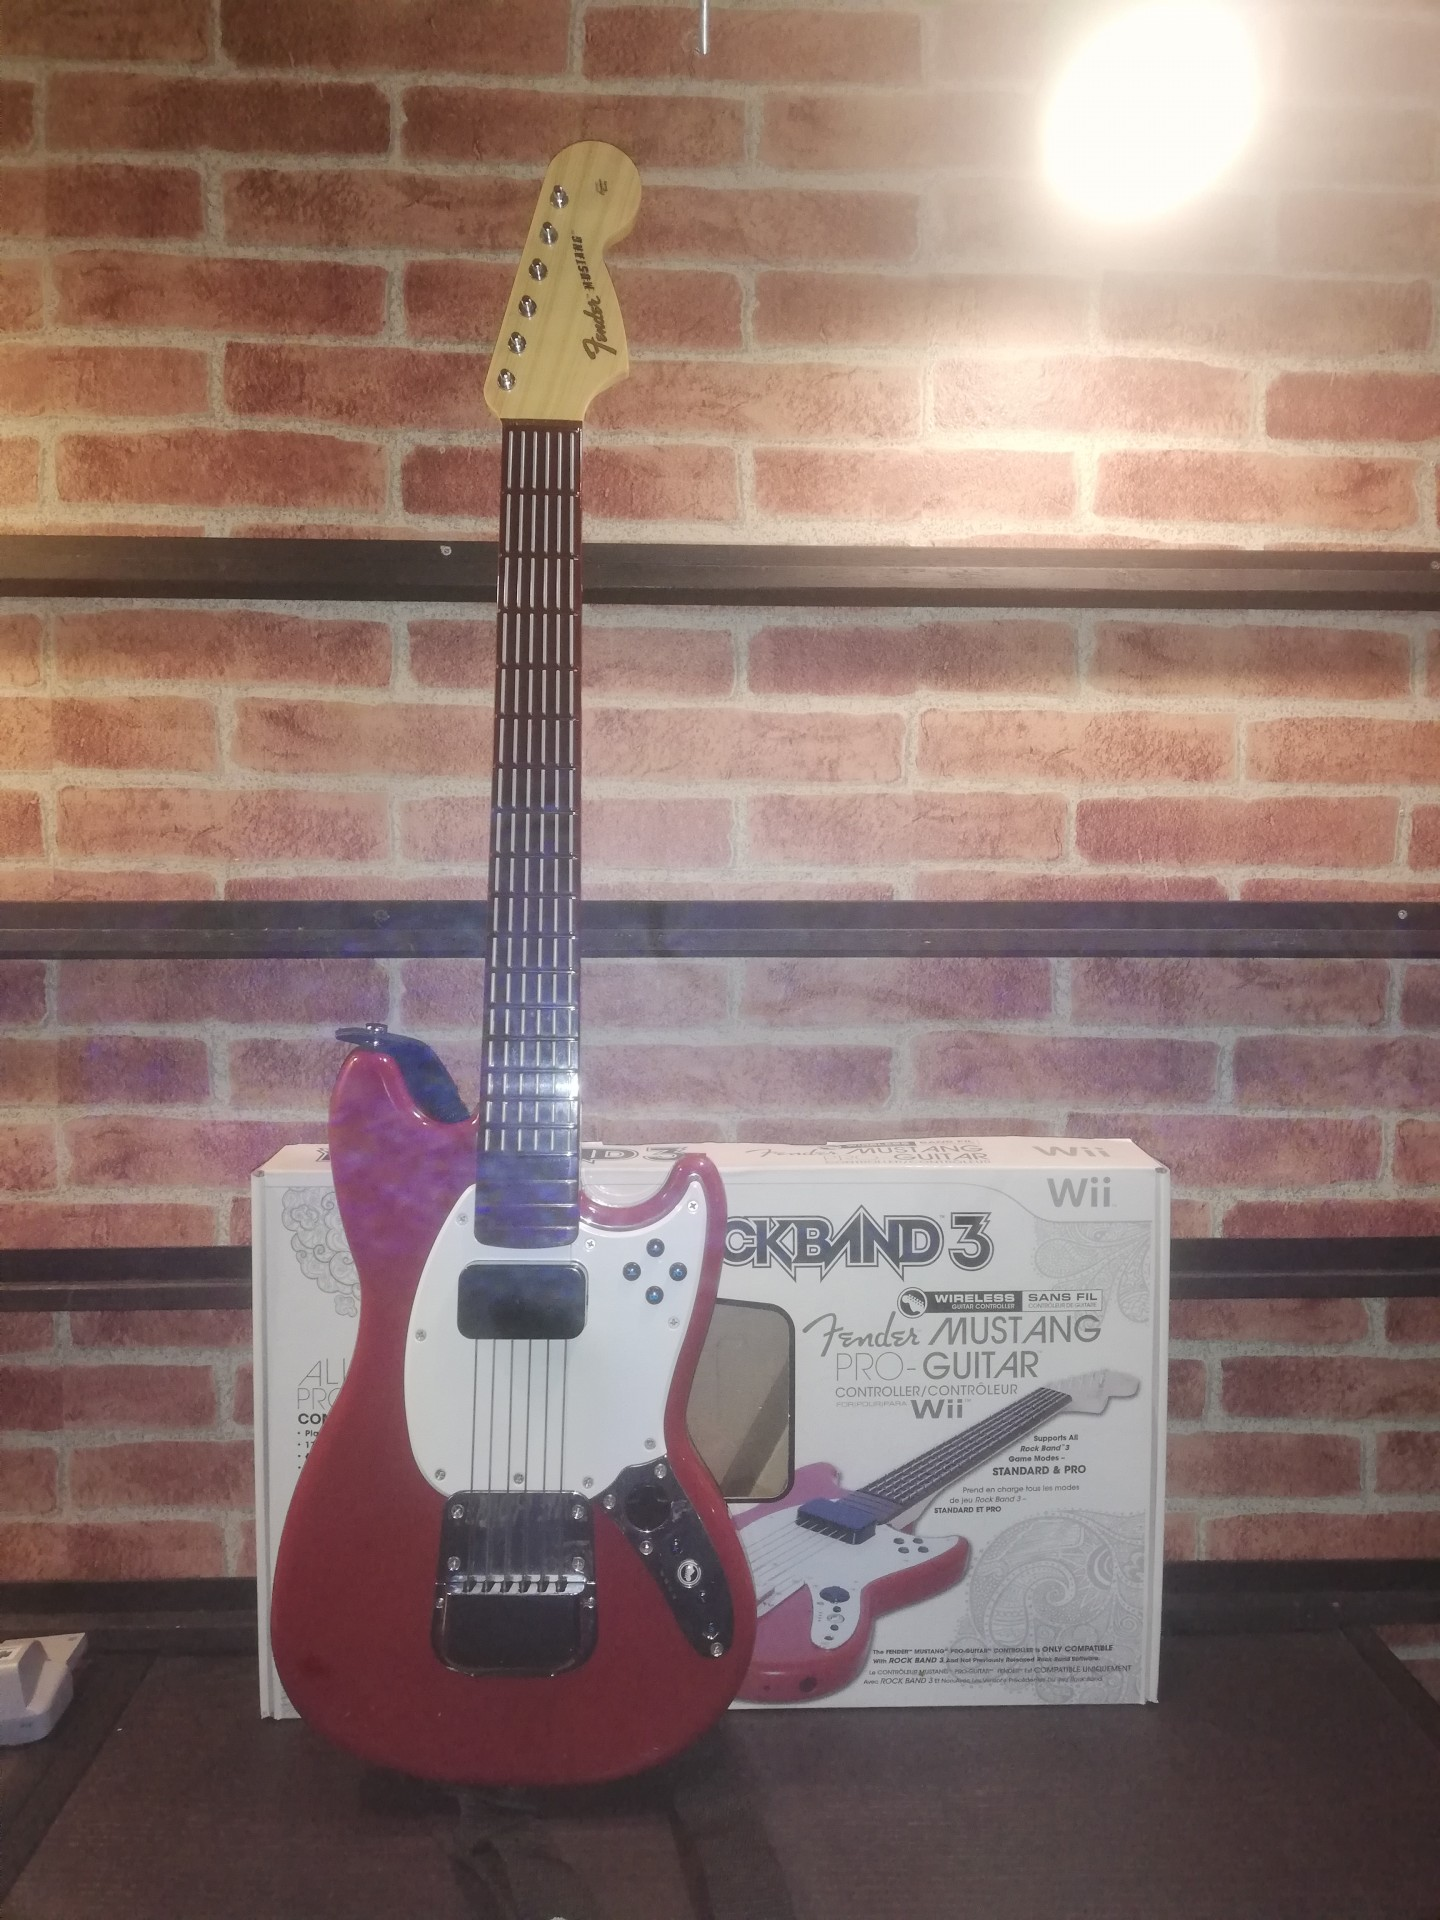 Rock Band 3 Pro Mustang Wireless Guitar - Wii